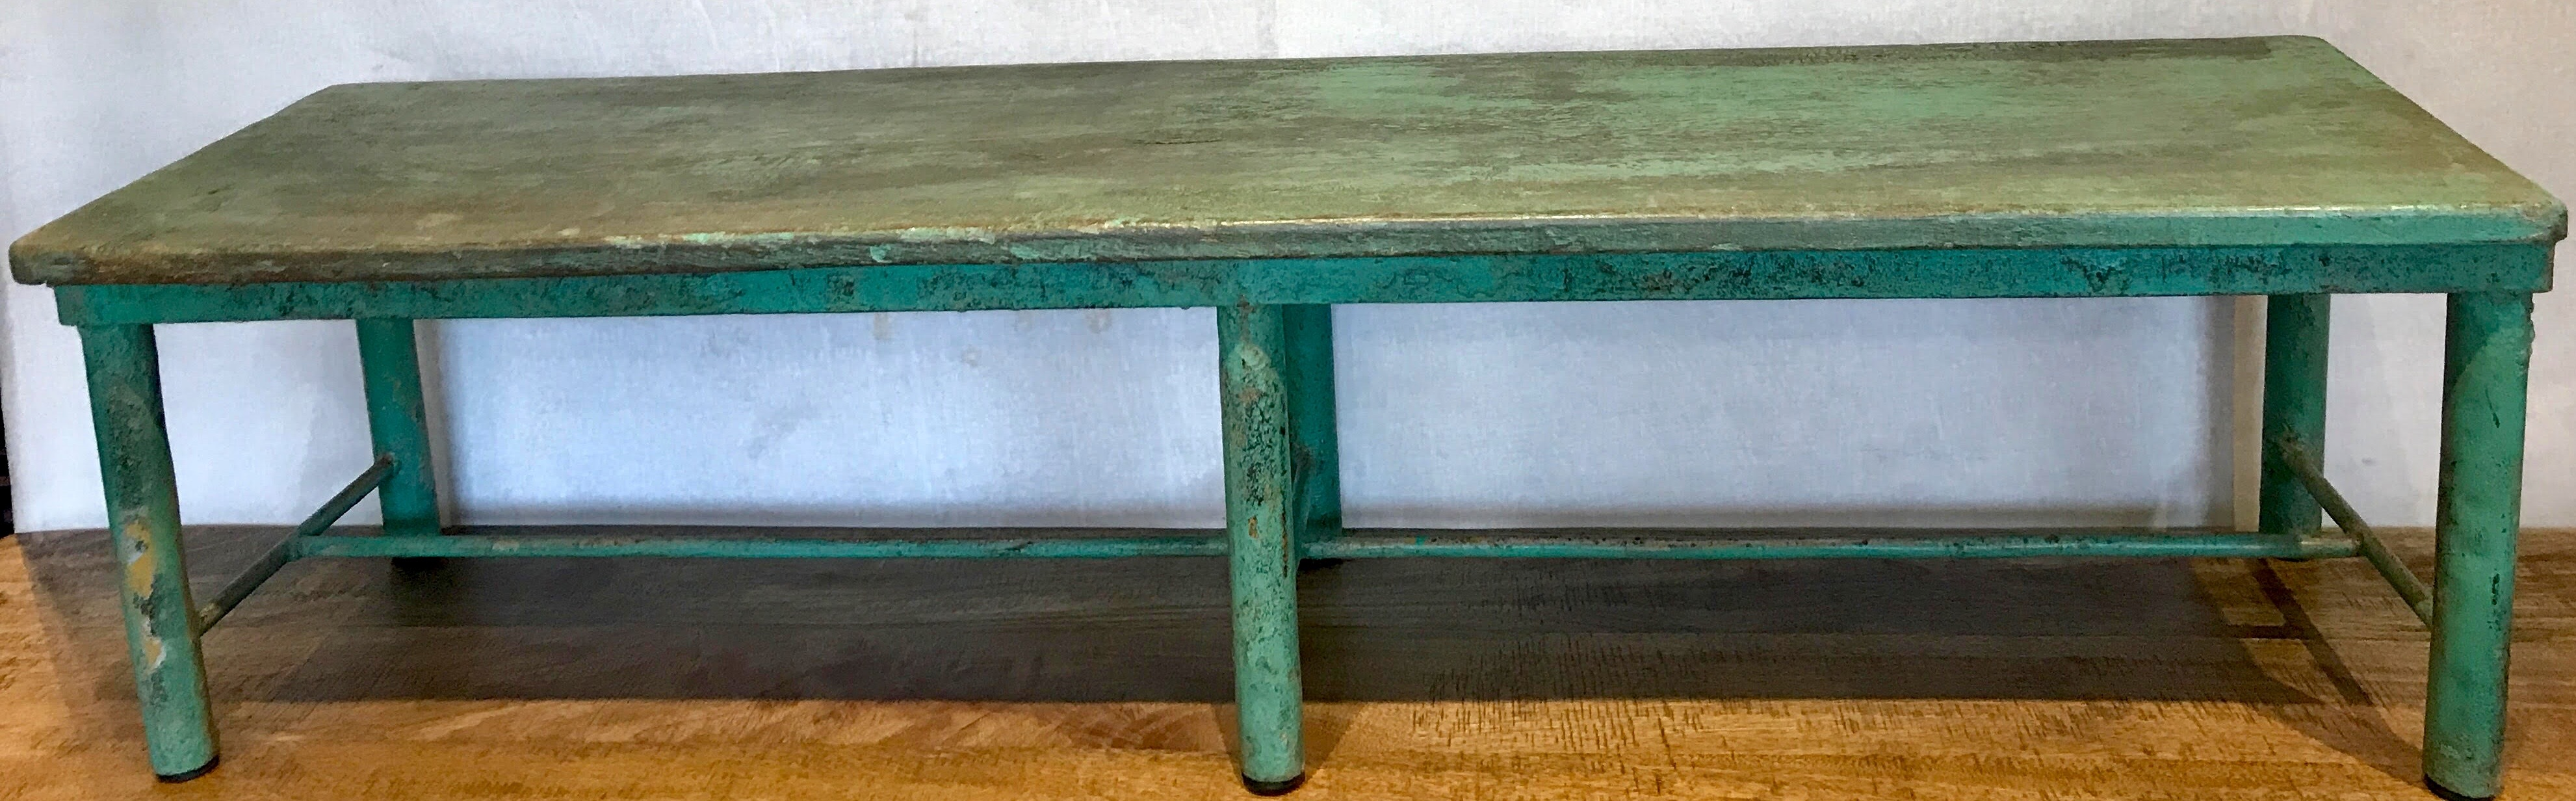 BENCH TURQUOISE METAL LOW